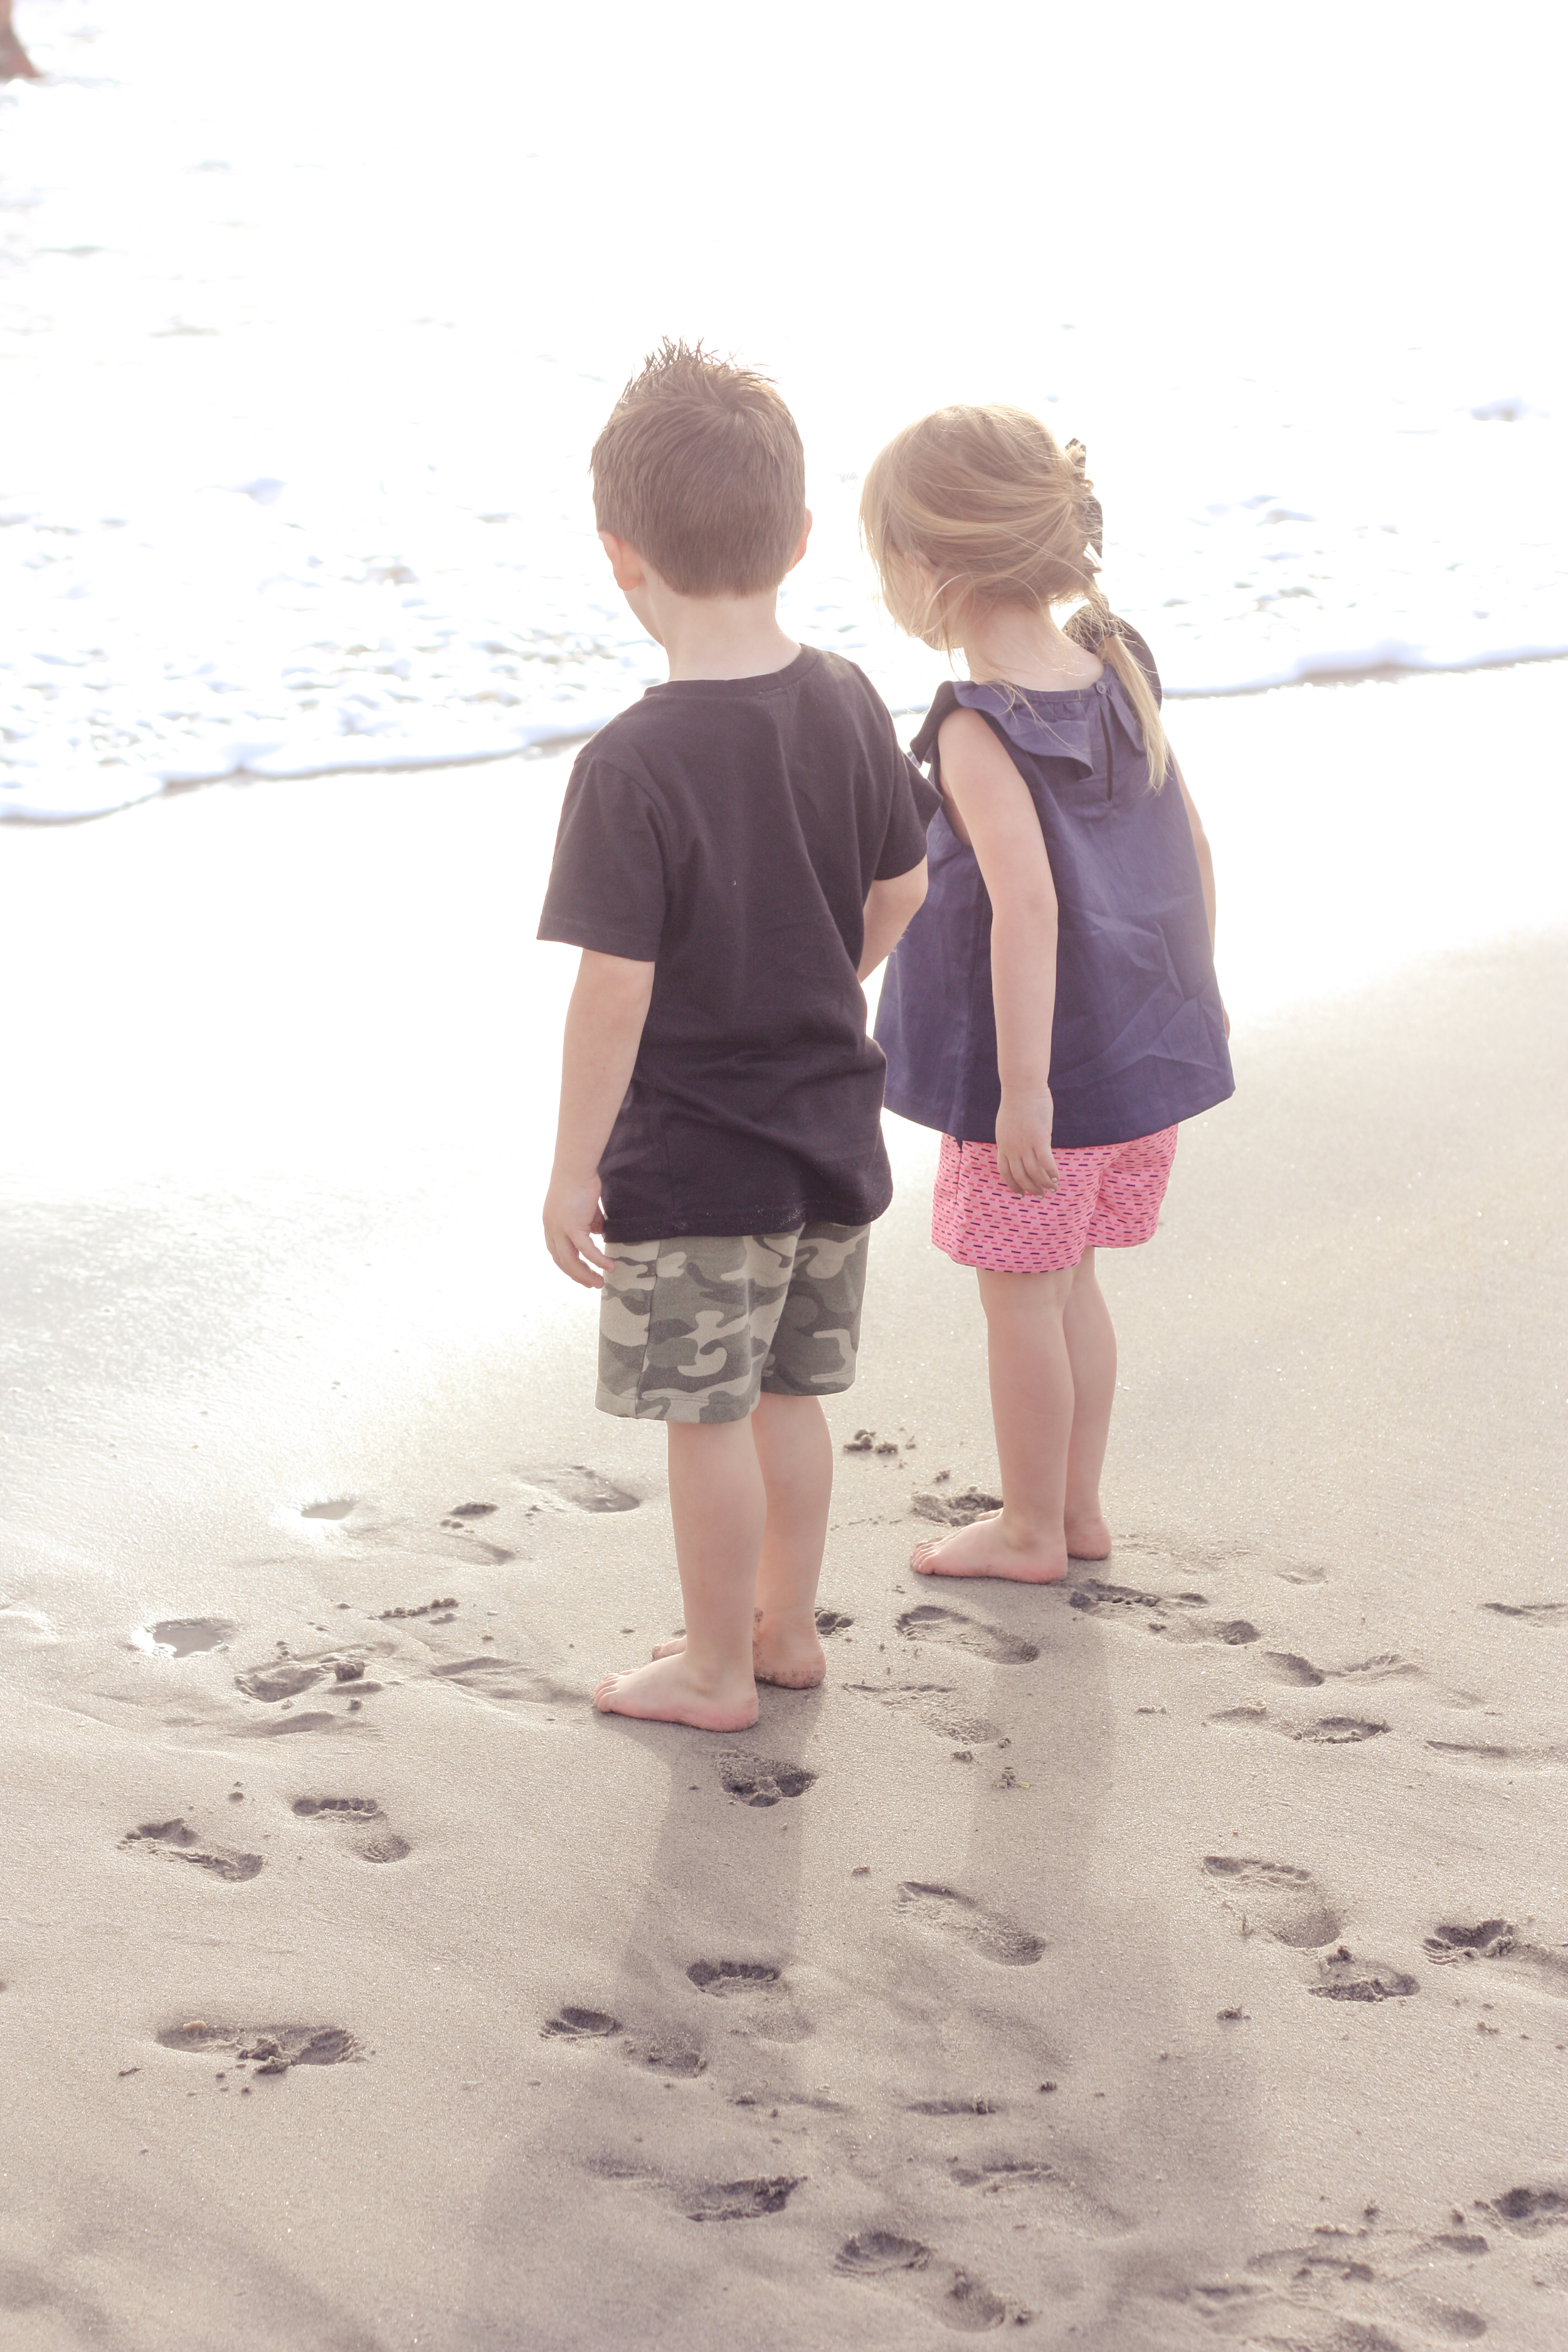 I always want to remember the look of awe as they saw the ocean, and these tiny, perfect, footprints in the sand.